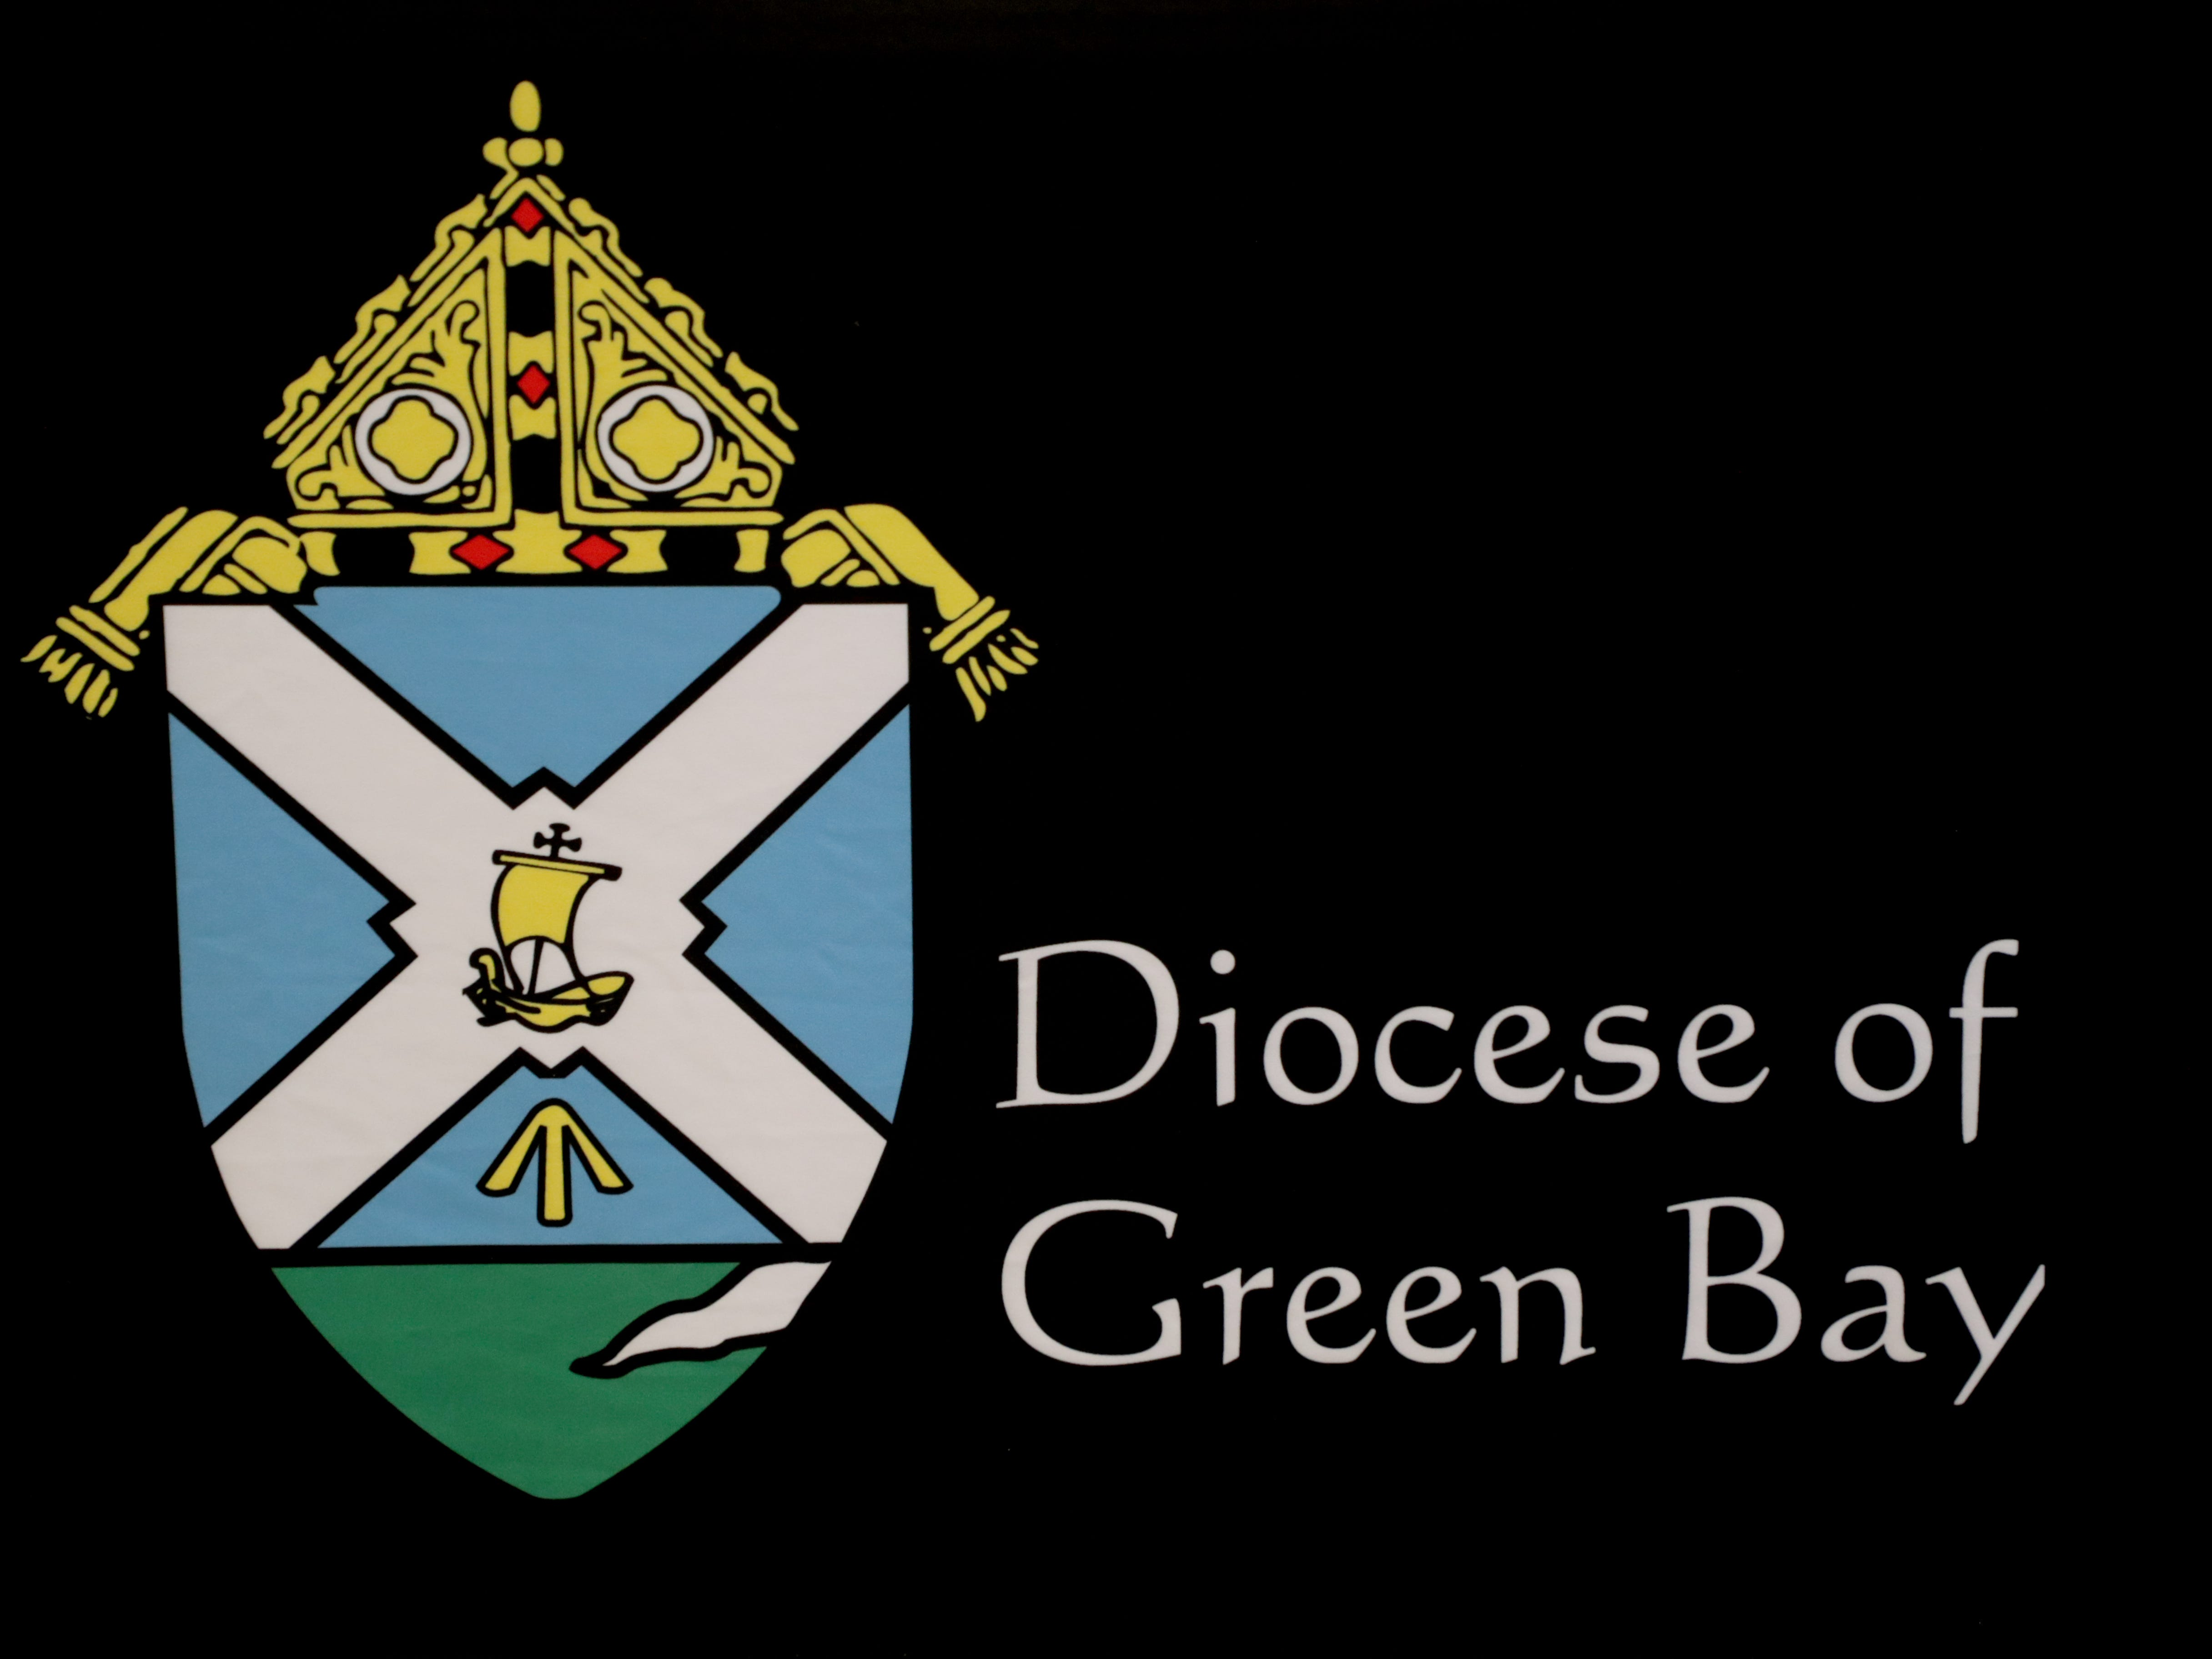 Logo for the Catholic Diocese of Green Bay.